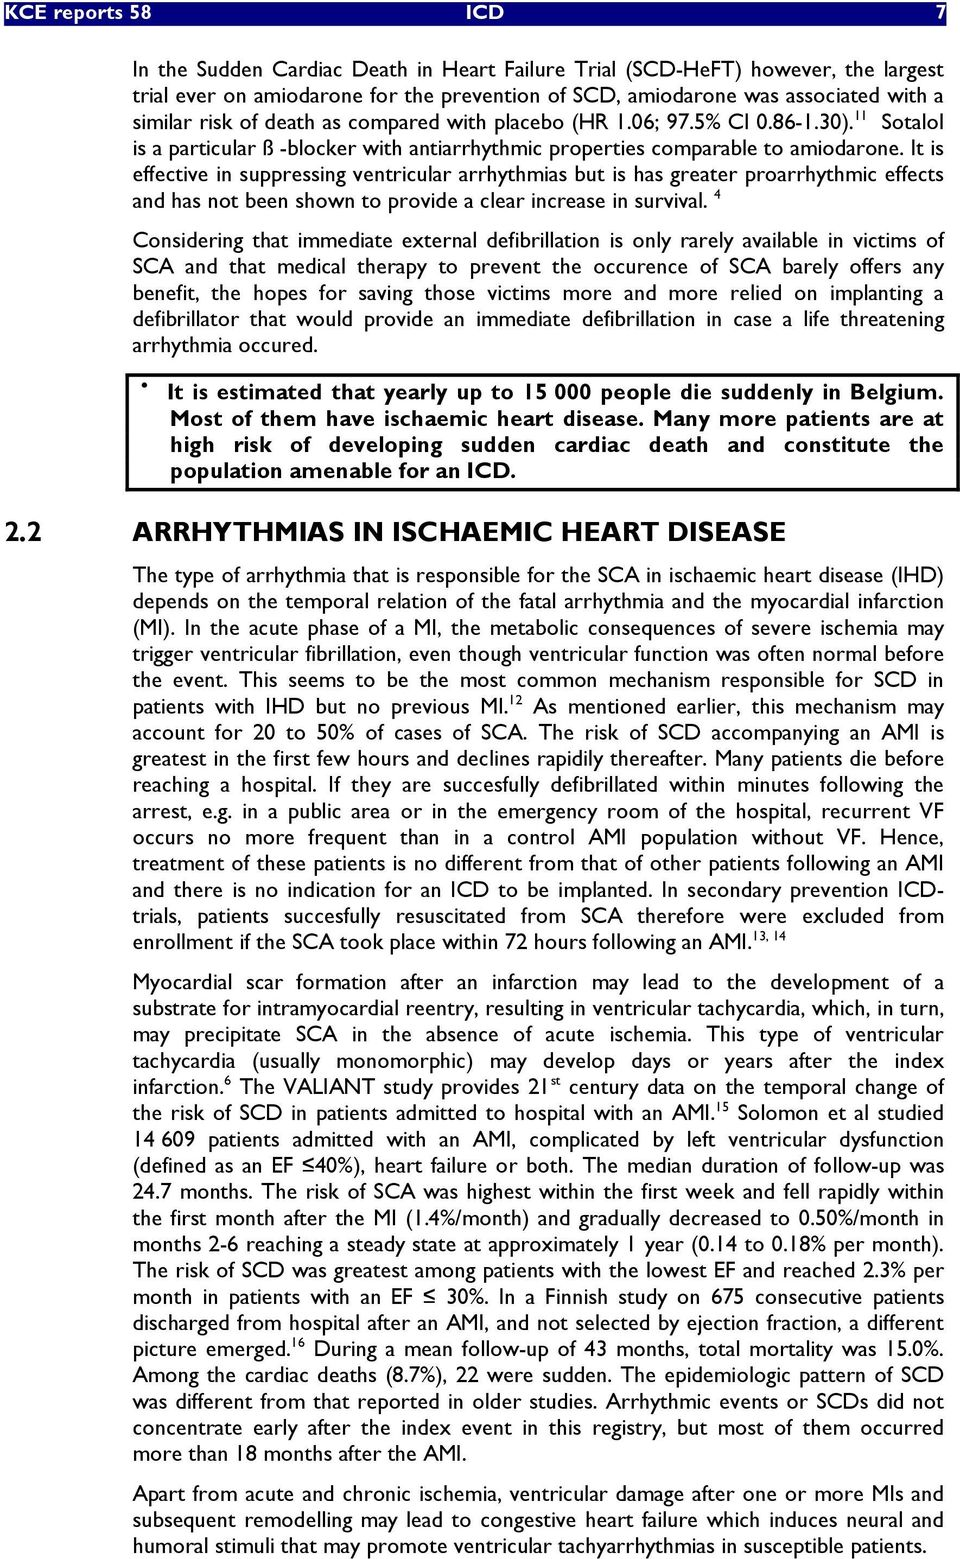 It is effective in suppressing ventricular arrhythmias but is has greater proarrhythmic effects and has not been shown to provide a clear increase in survival.